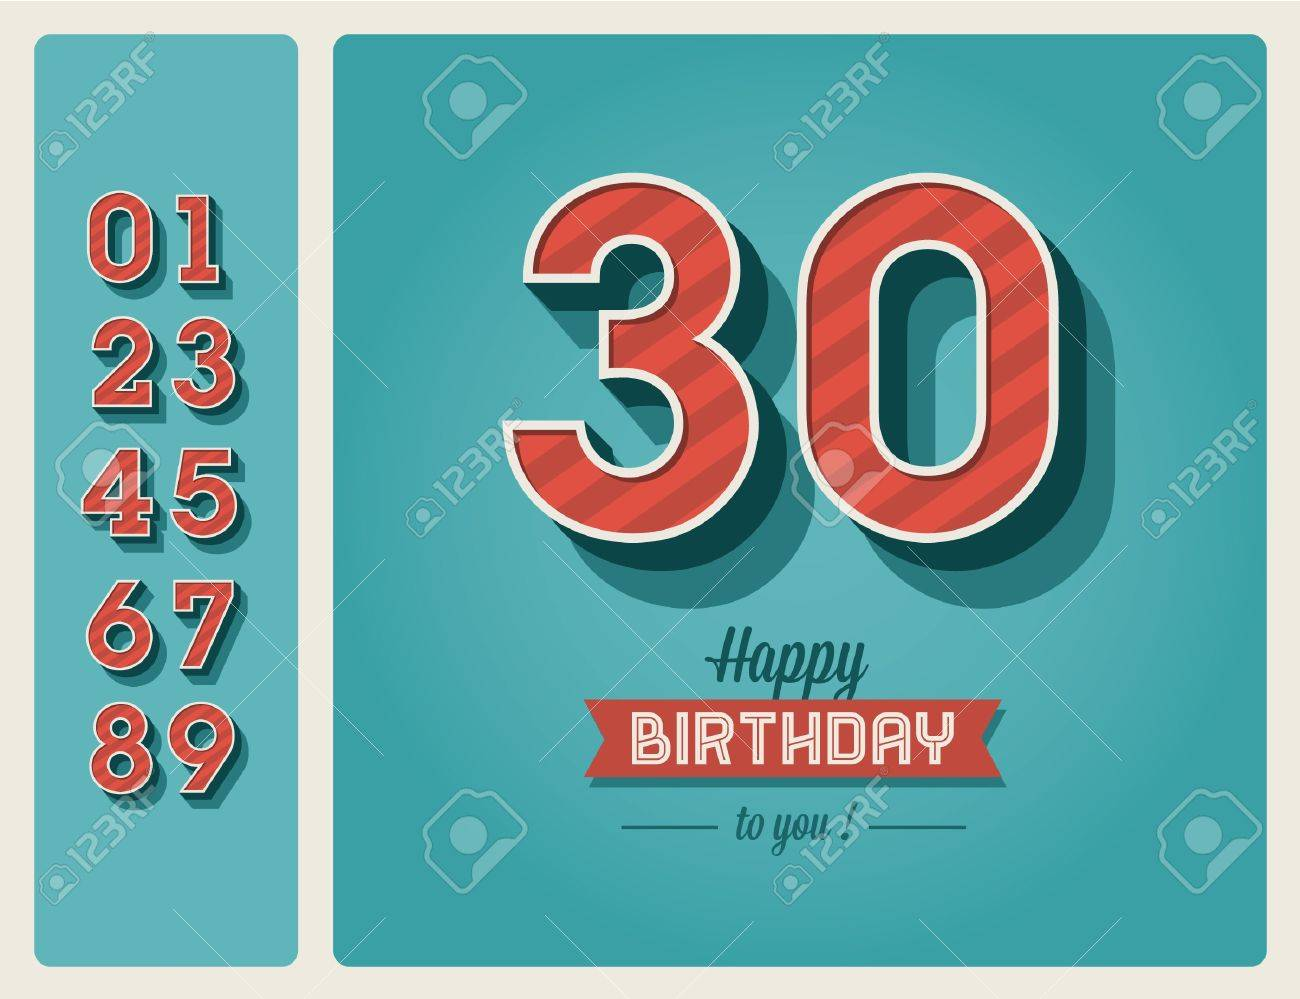 Template happy birthday card with number editable Stock Vector - 16758135